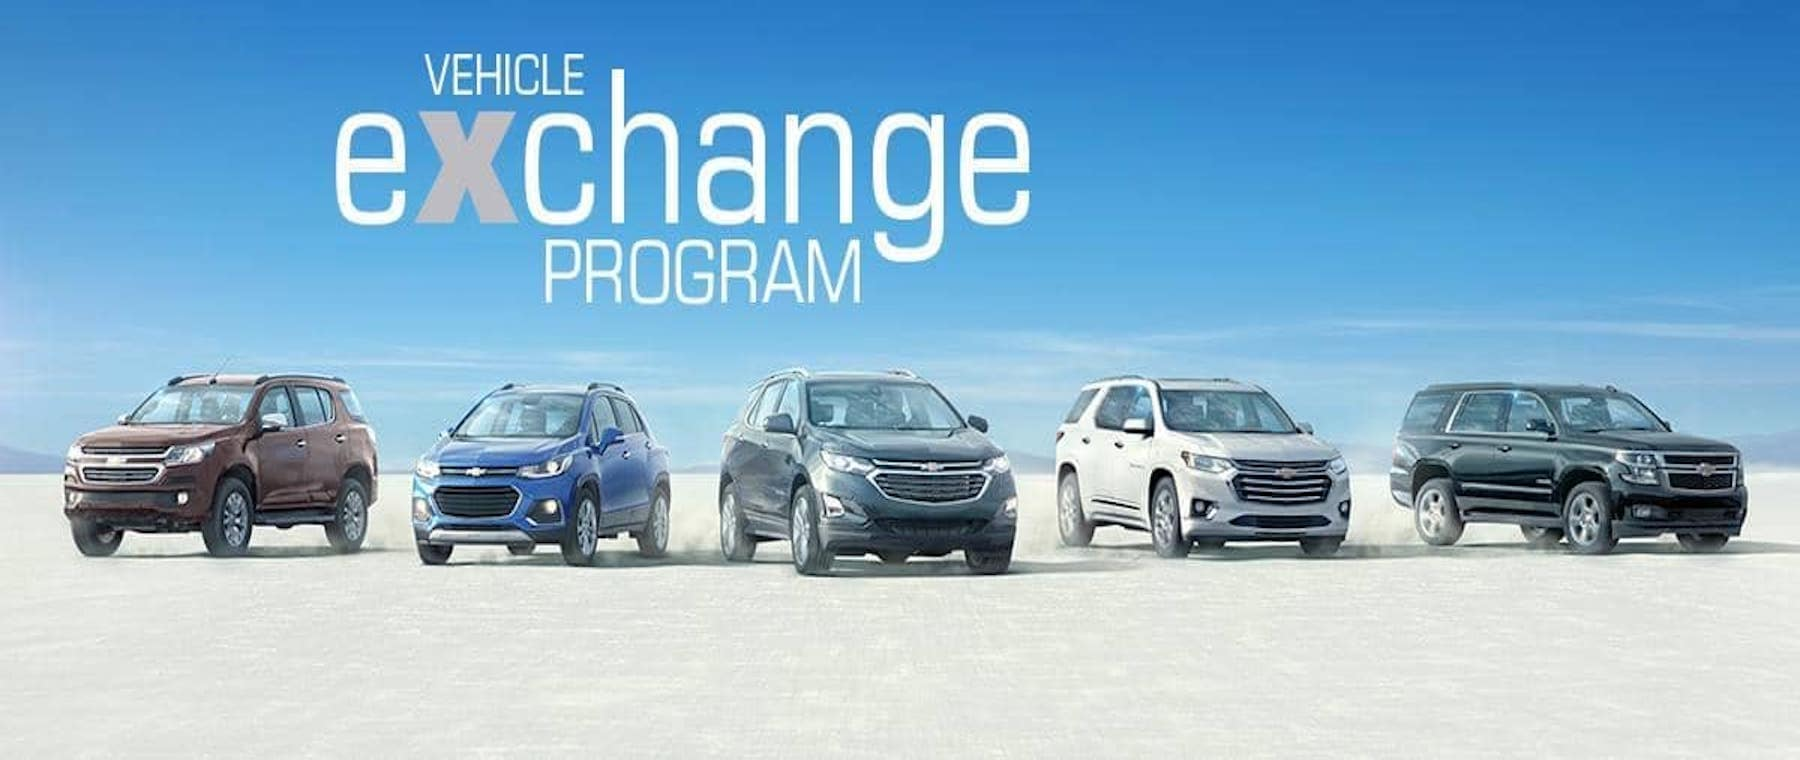 Vehicle-Exchange-Program